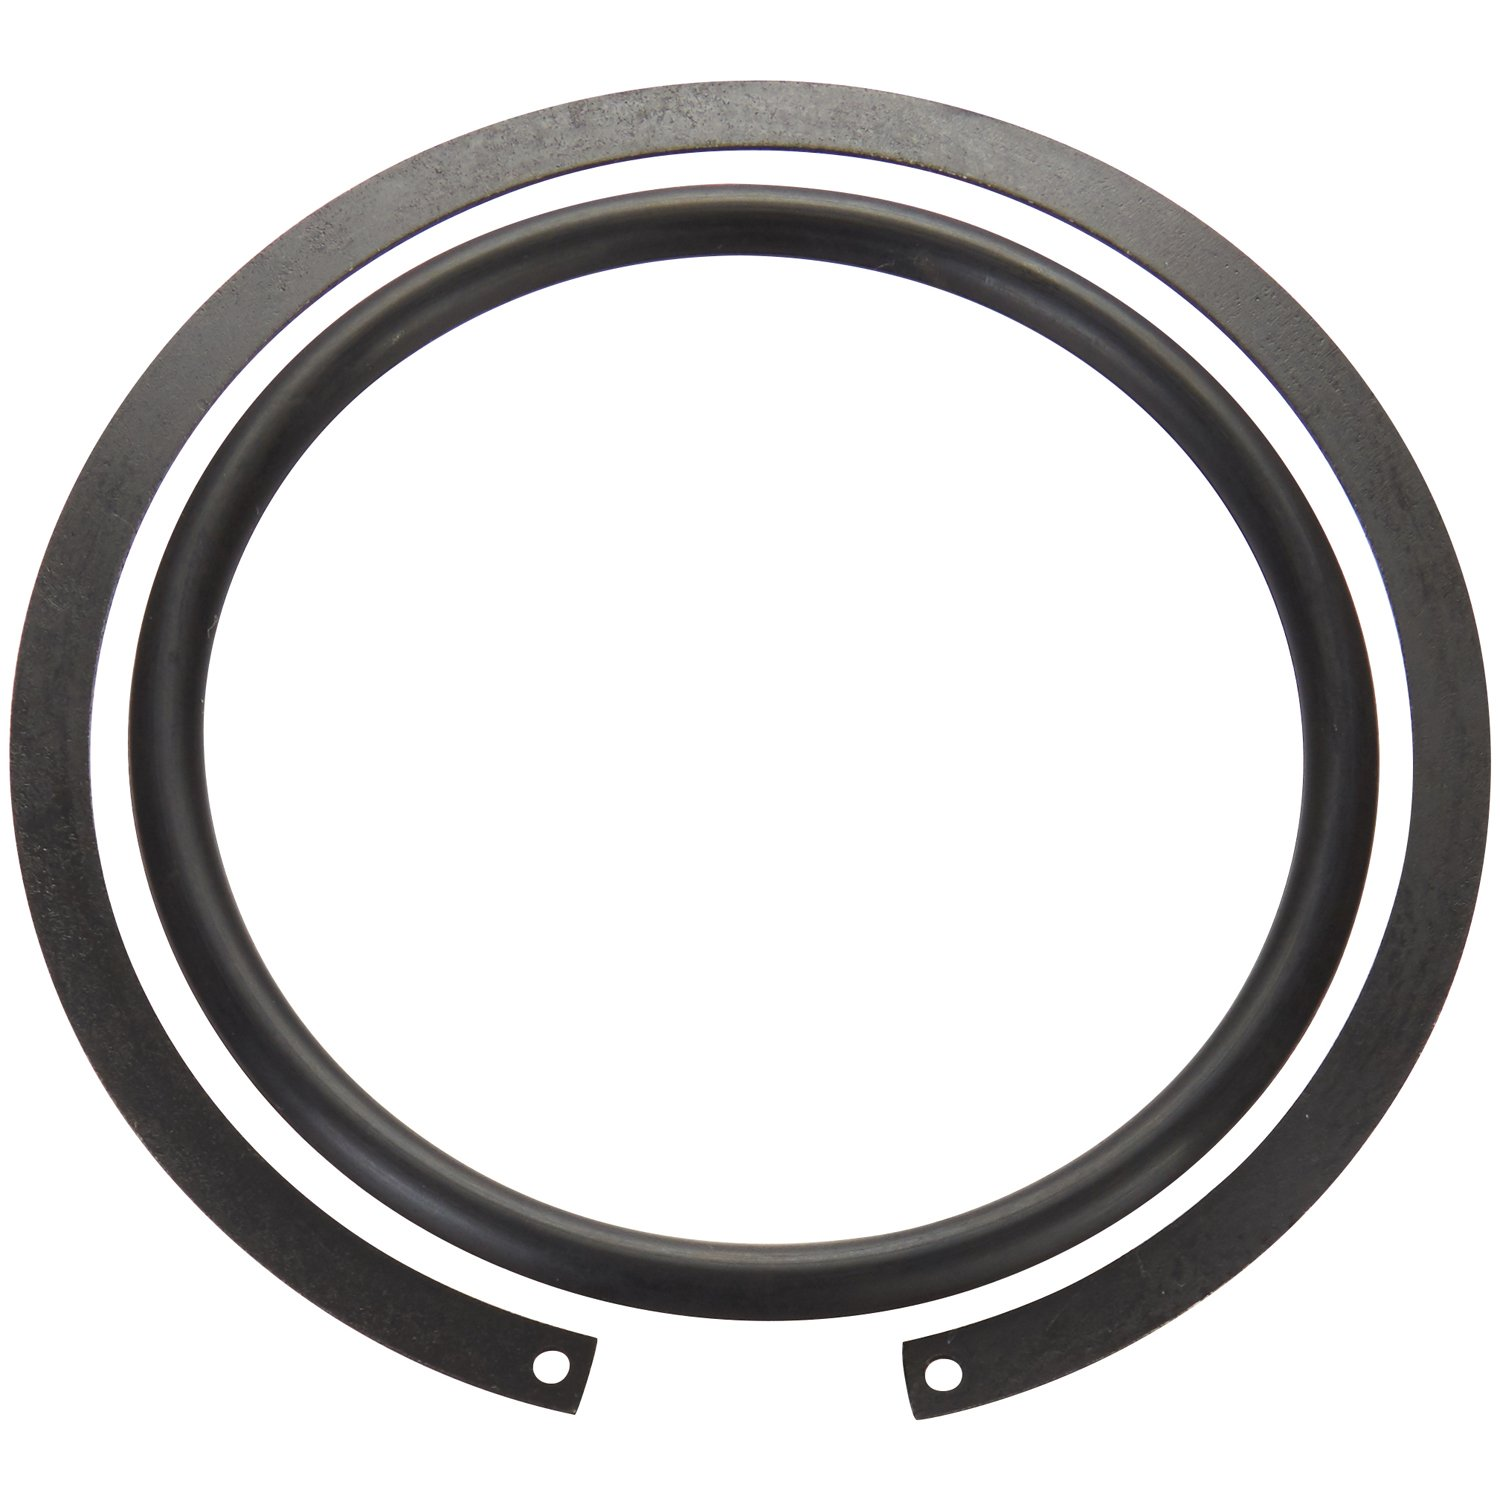 Best rated in automotive replacement fuel tank lock rings for General motors customer service complaints